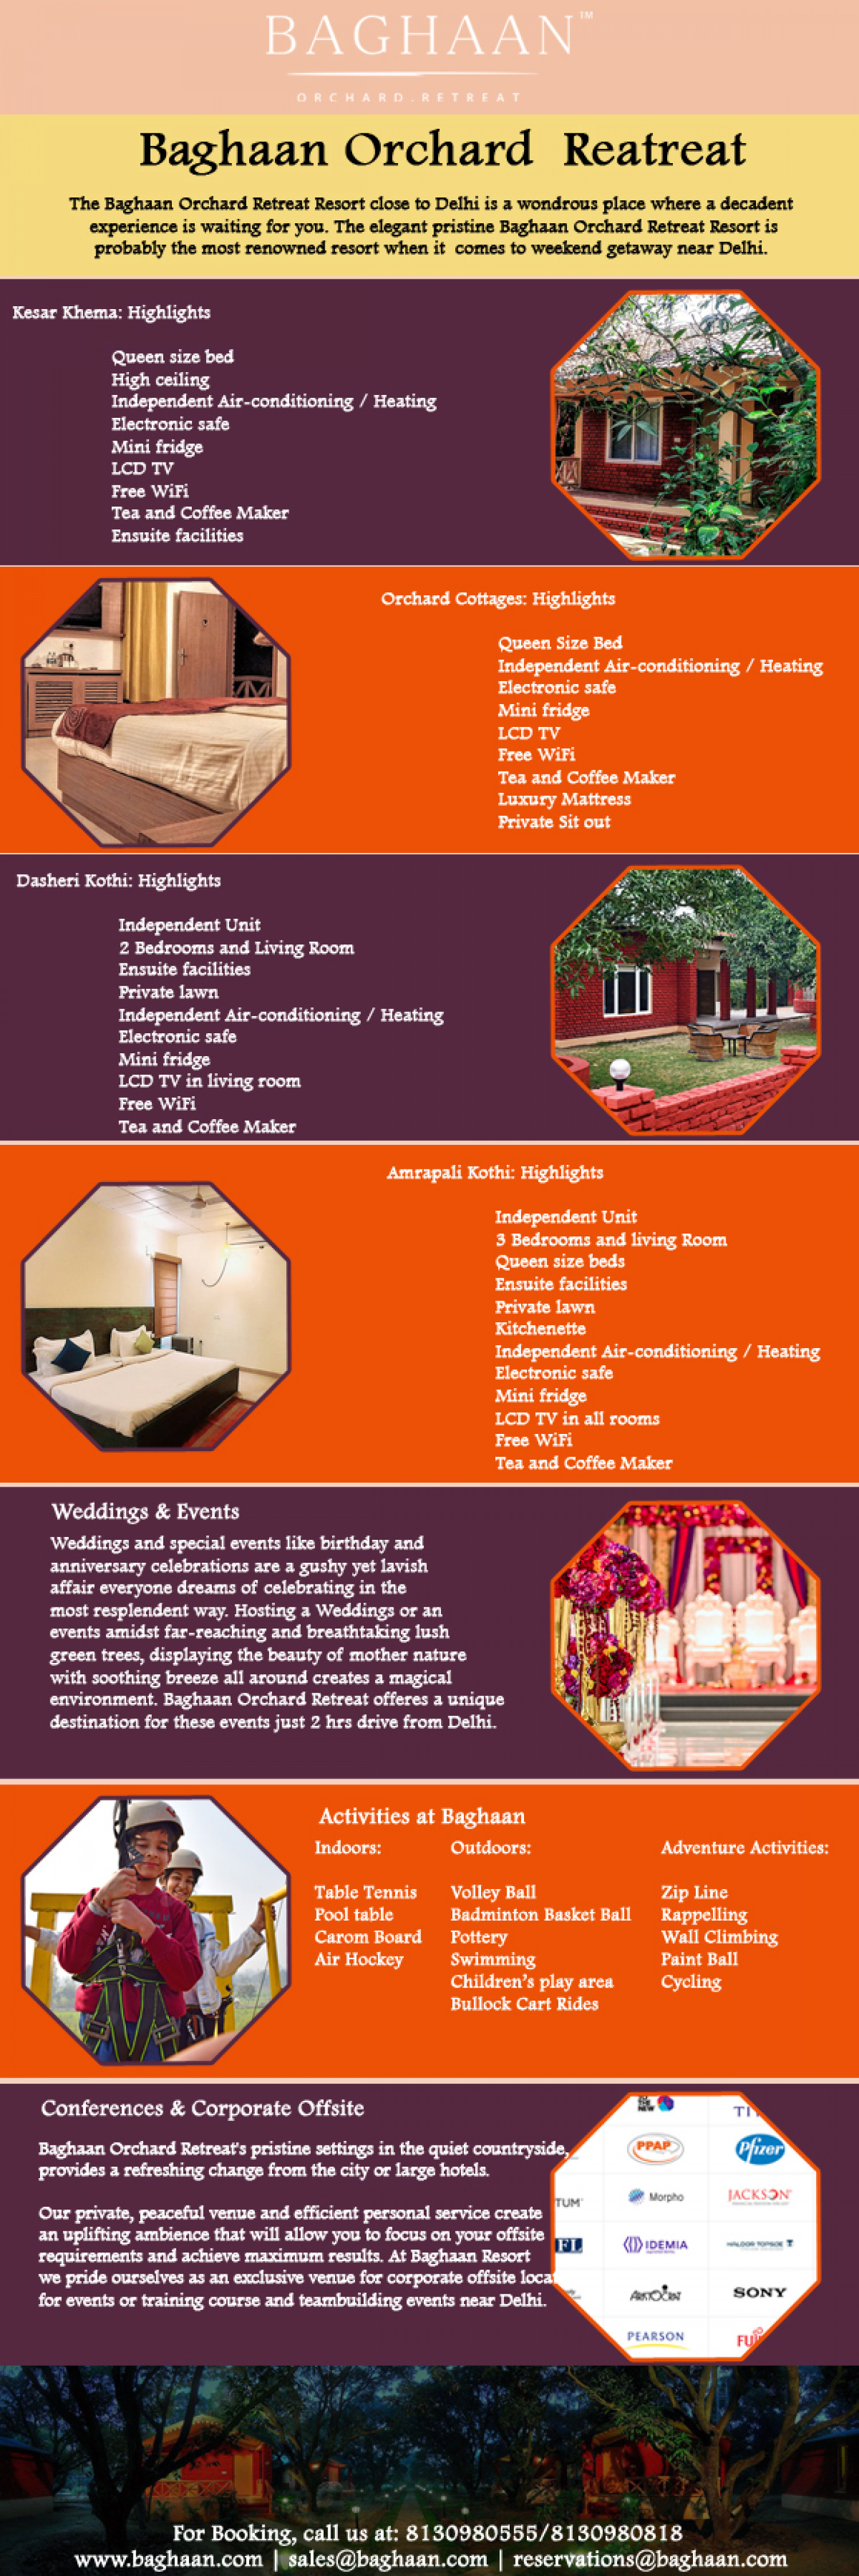 Baghaan Orchard Retreat - Unique Destination for Anniversary & Birthday Party – Weekend Gateway  Infographic